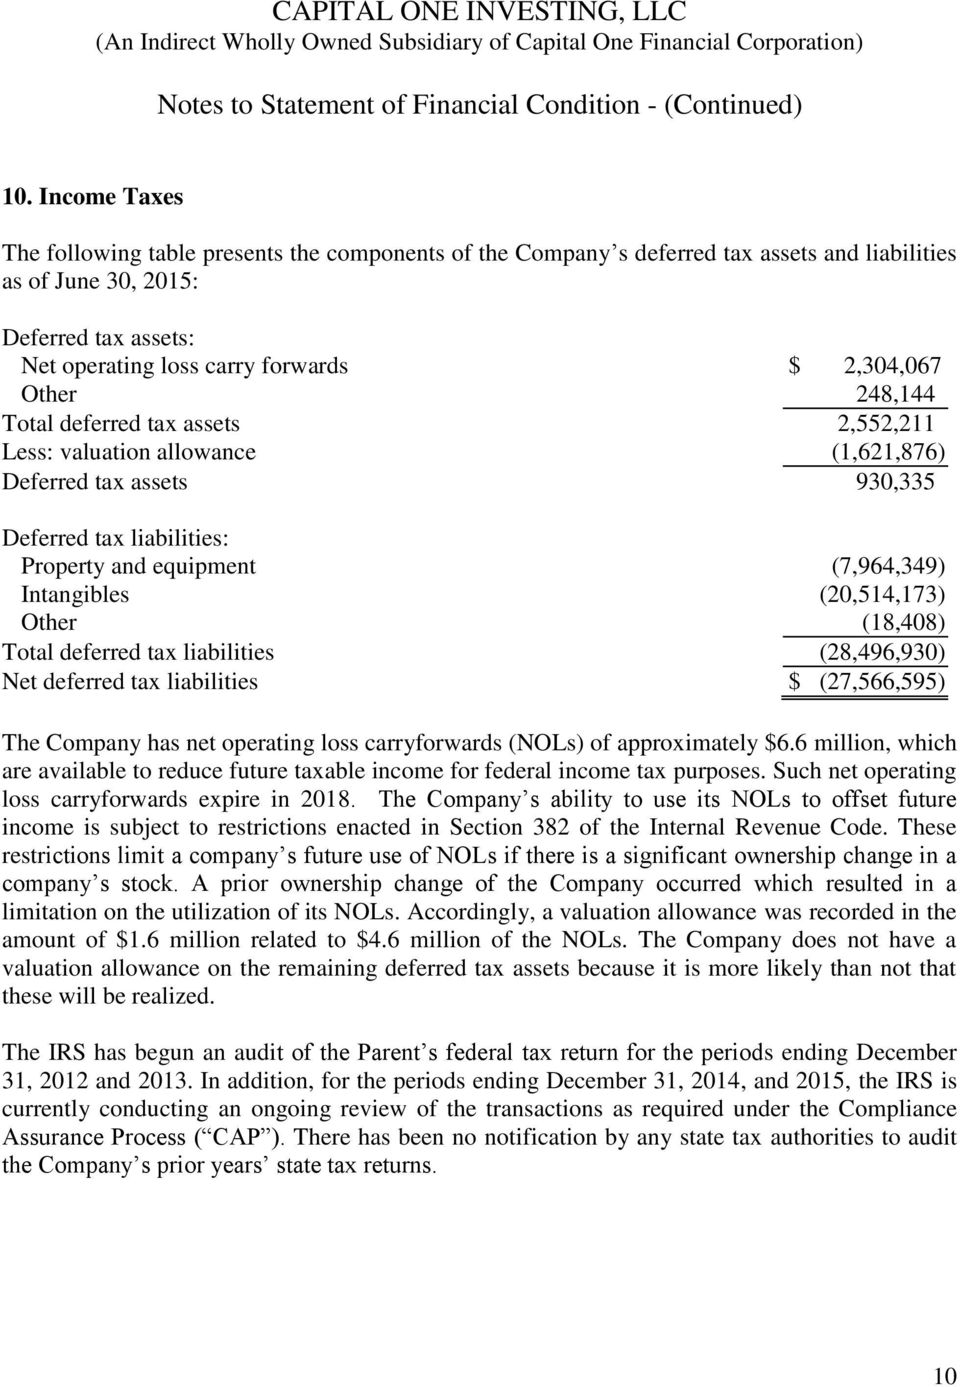 (20,514,173) Other (18,408) Total deferred tax liabilities (28,496,930) Net deferred tax liabilities $ (27,566,595) The Company has net operating loss carryforwards (NOLs) of approximately $6.